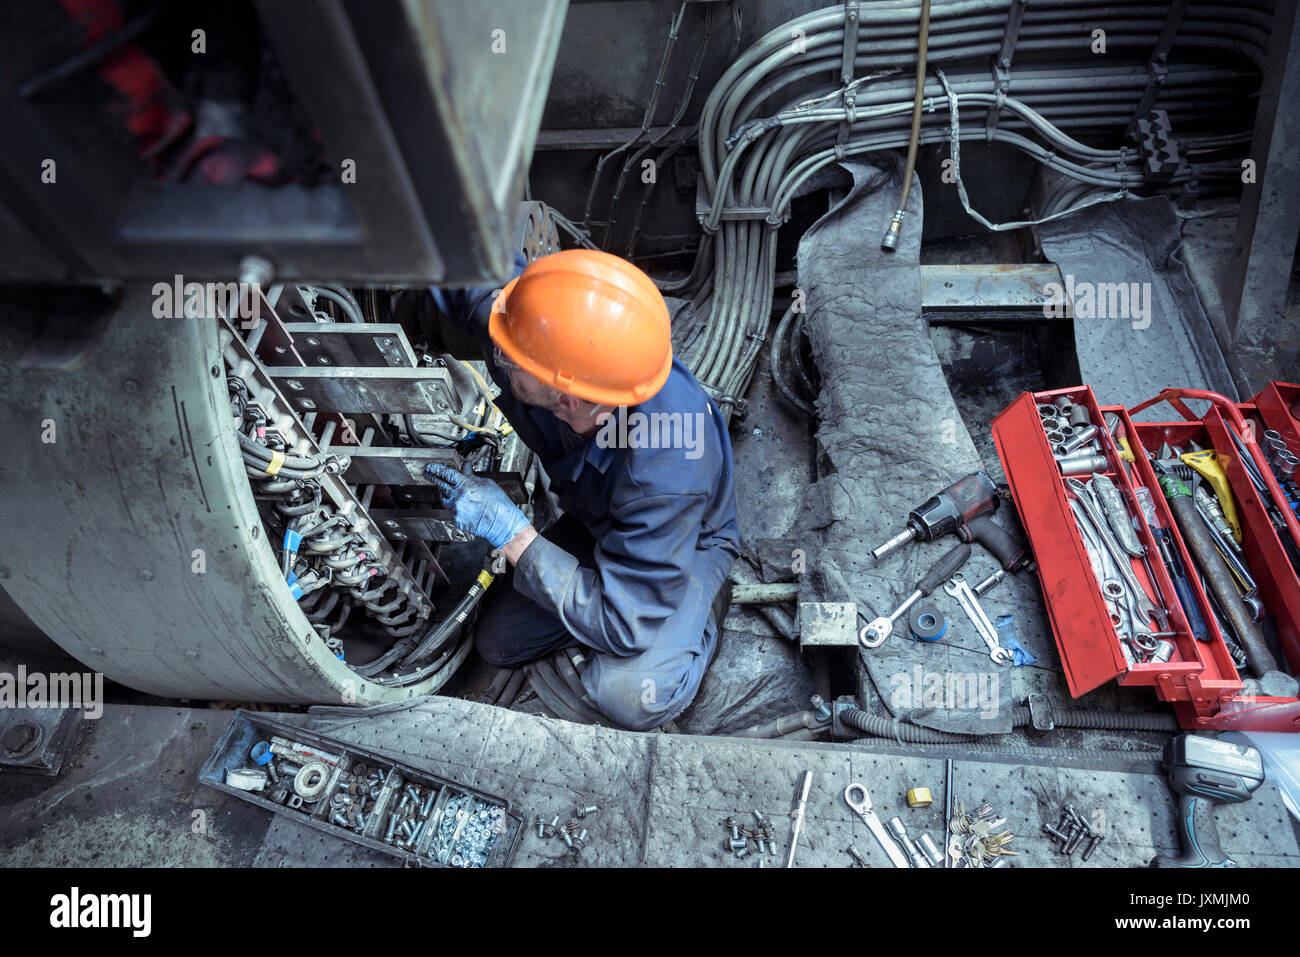 Locomotive engineer working on locomotive engine in train works - Stock Image